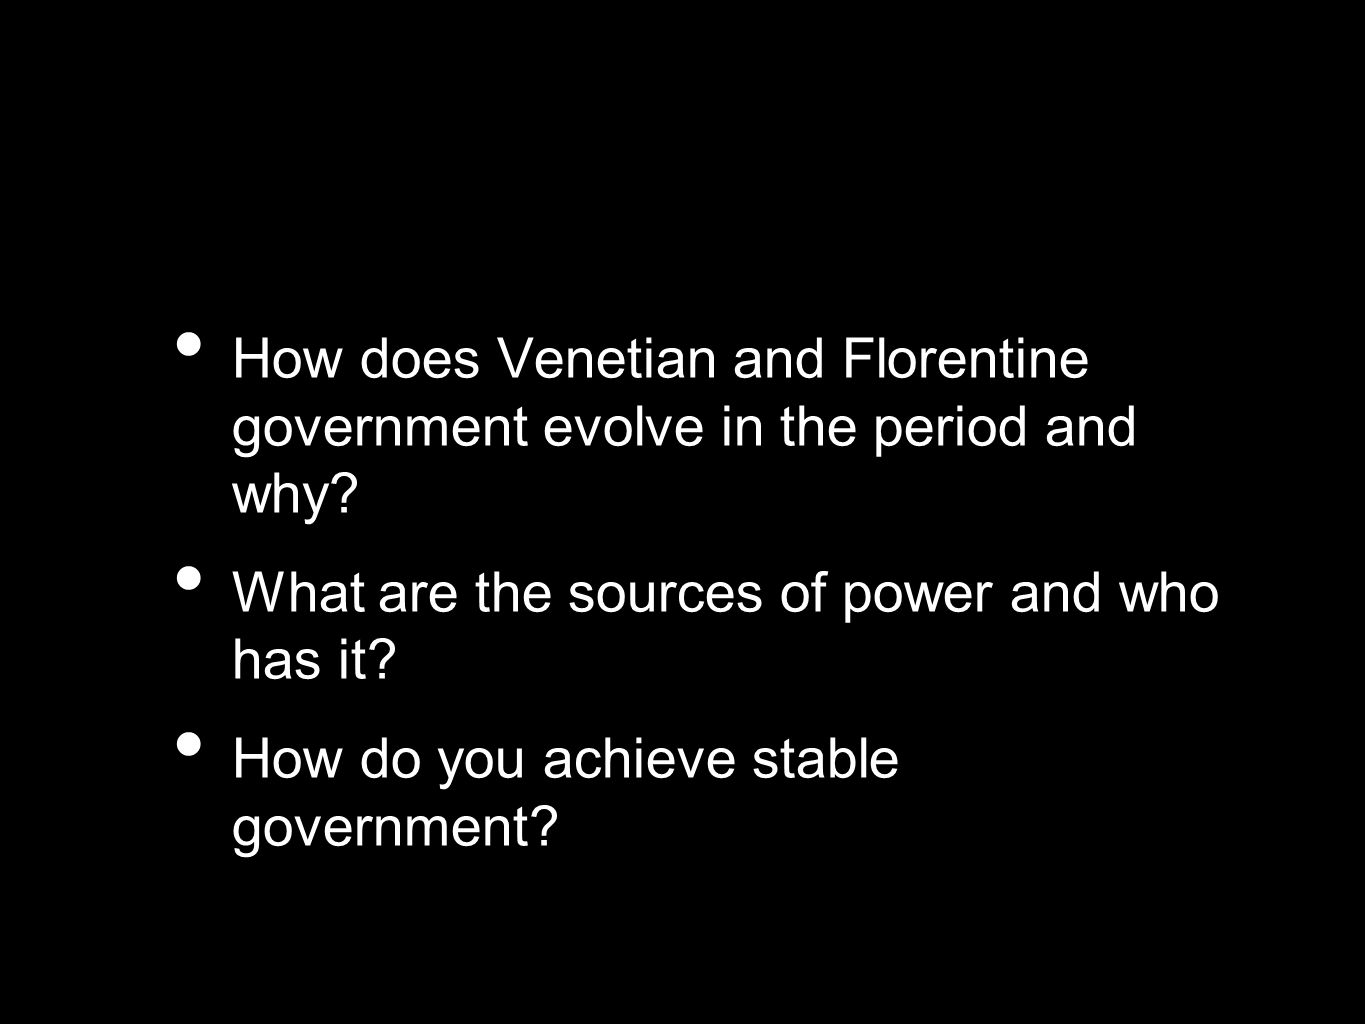 How does Venetian and Florentine government evolve in the period and why